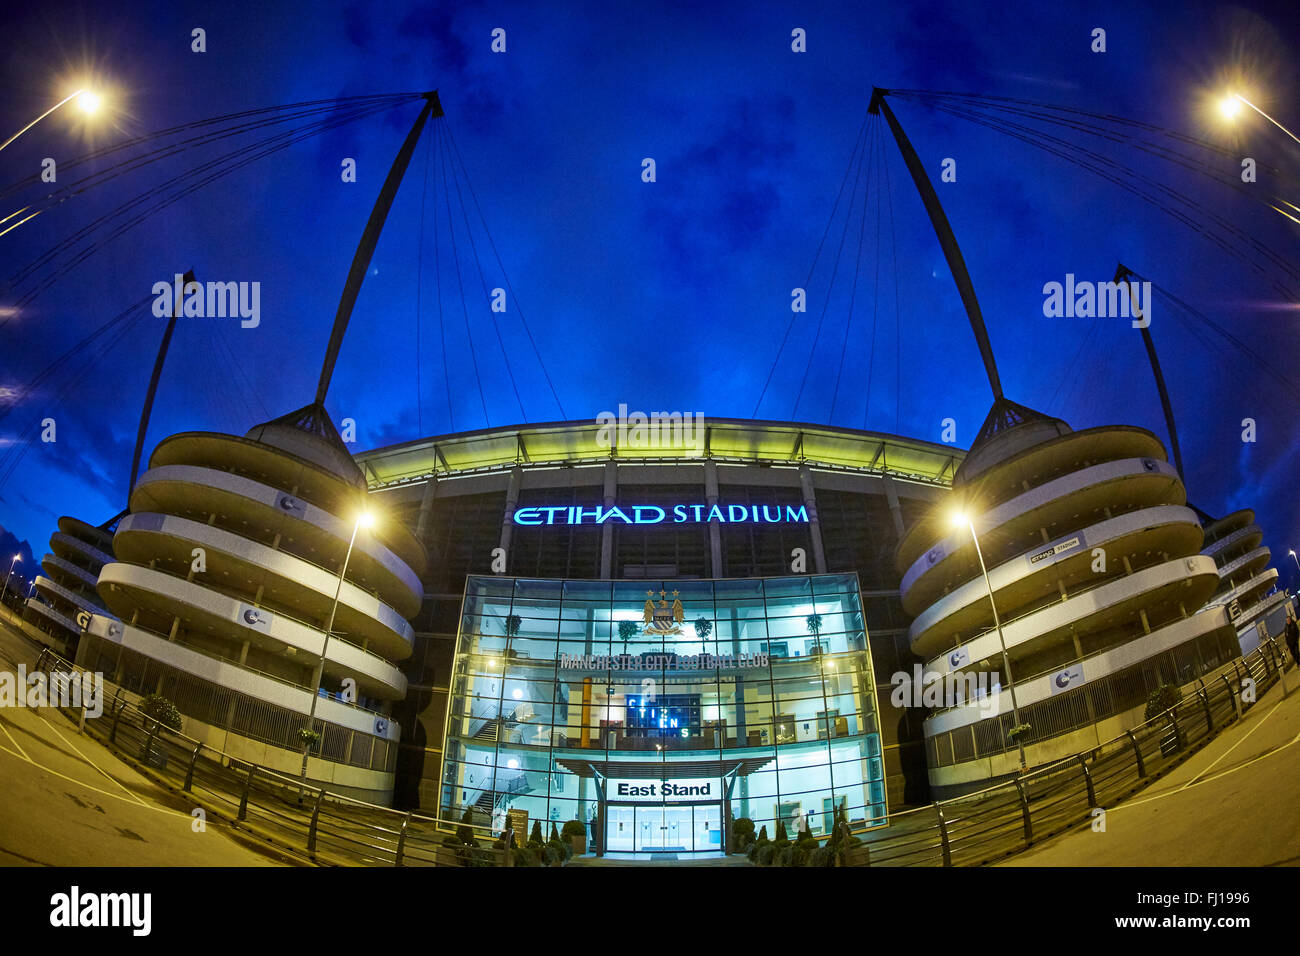 The City of Manchester Stadium in Manchester, England, also known as Etihad Stadium for sponsorship reasons, is Stock Photo